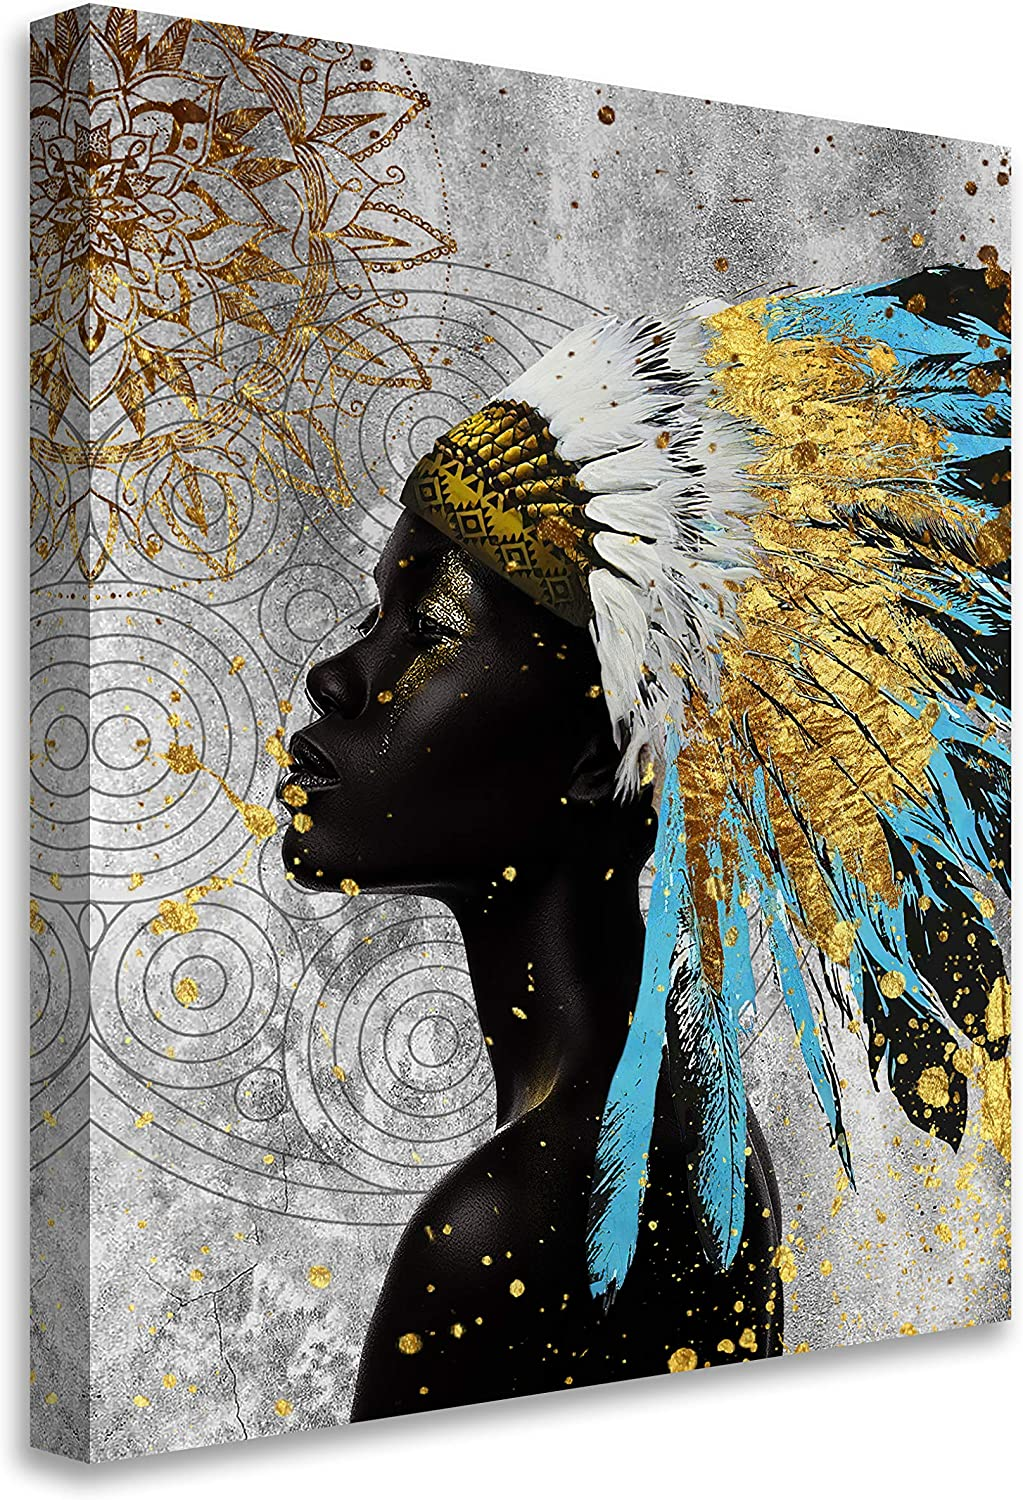 Framed African American Wall Art Black Art Blue Gold Feathered African Indian Women Painting on Canvas Print Wall Picture for Living Room Home Decor Stretched Ready to Hang,11x14in